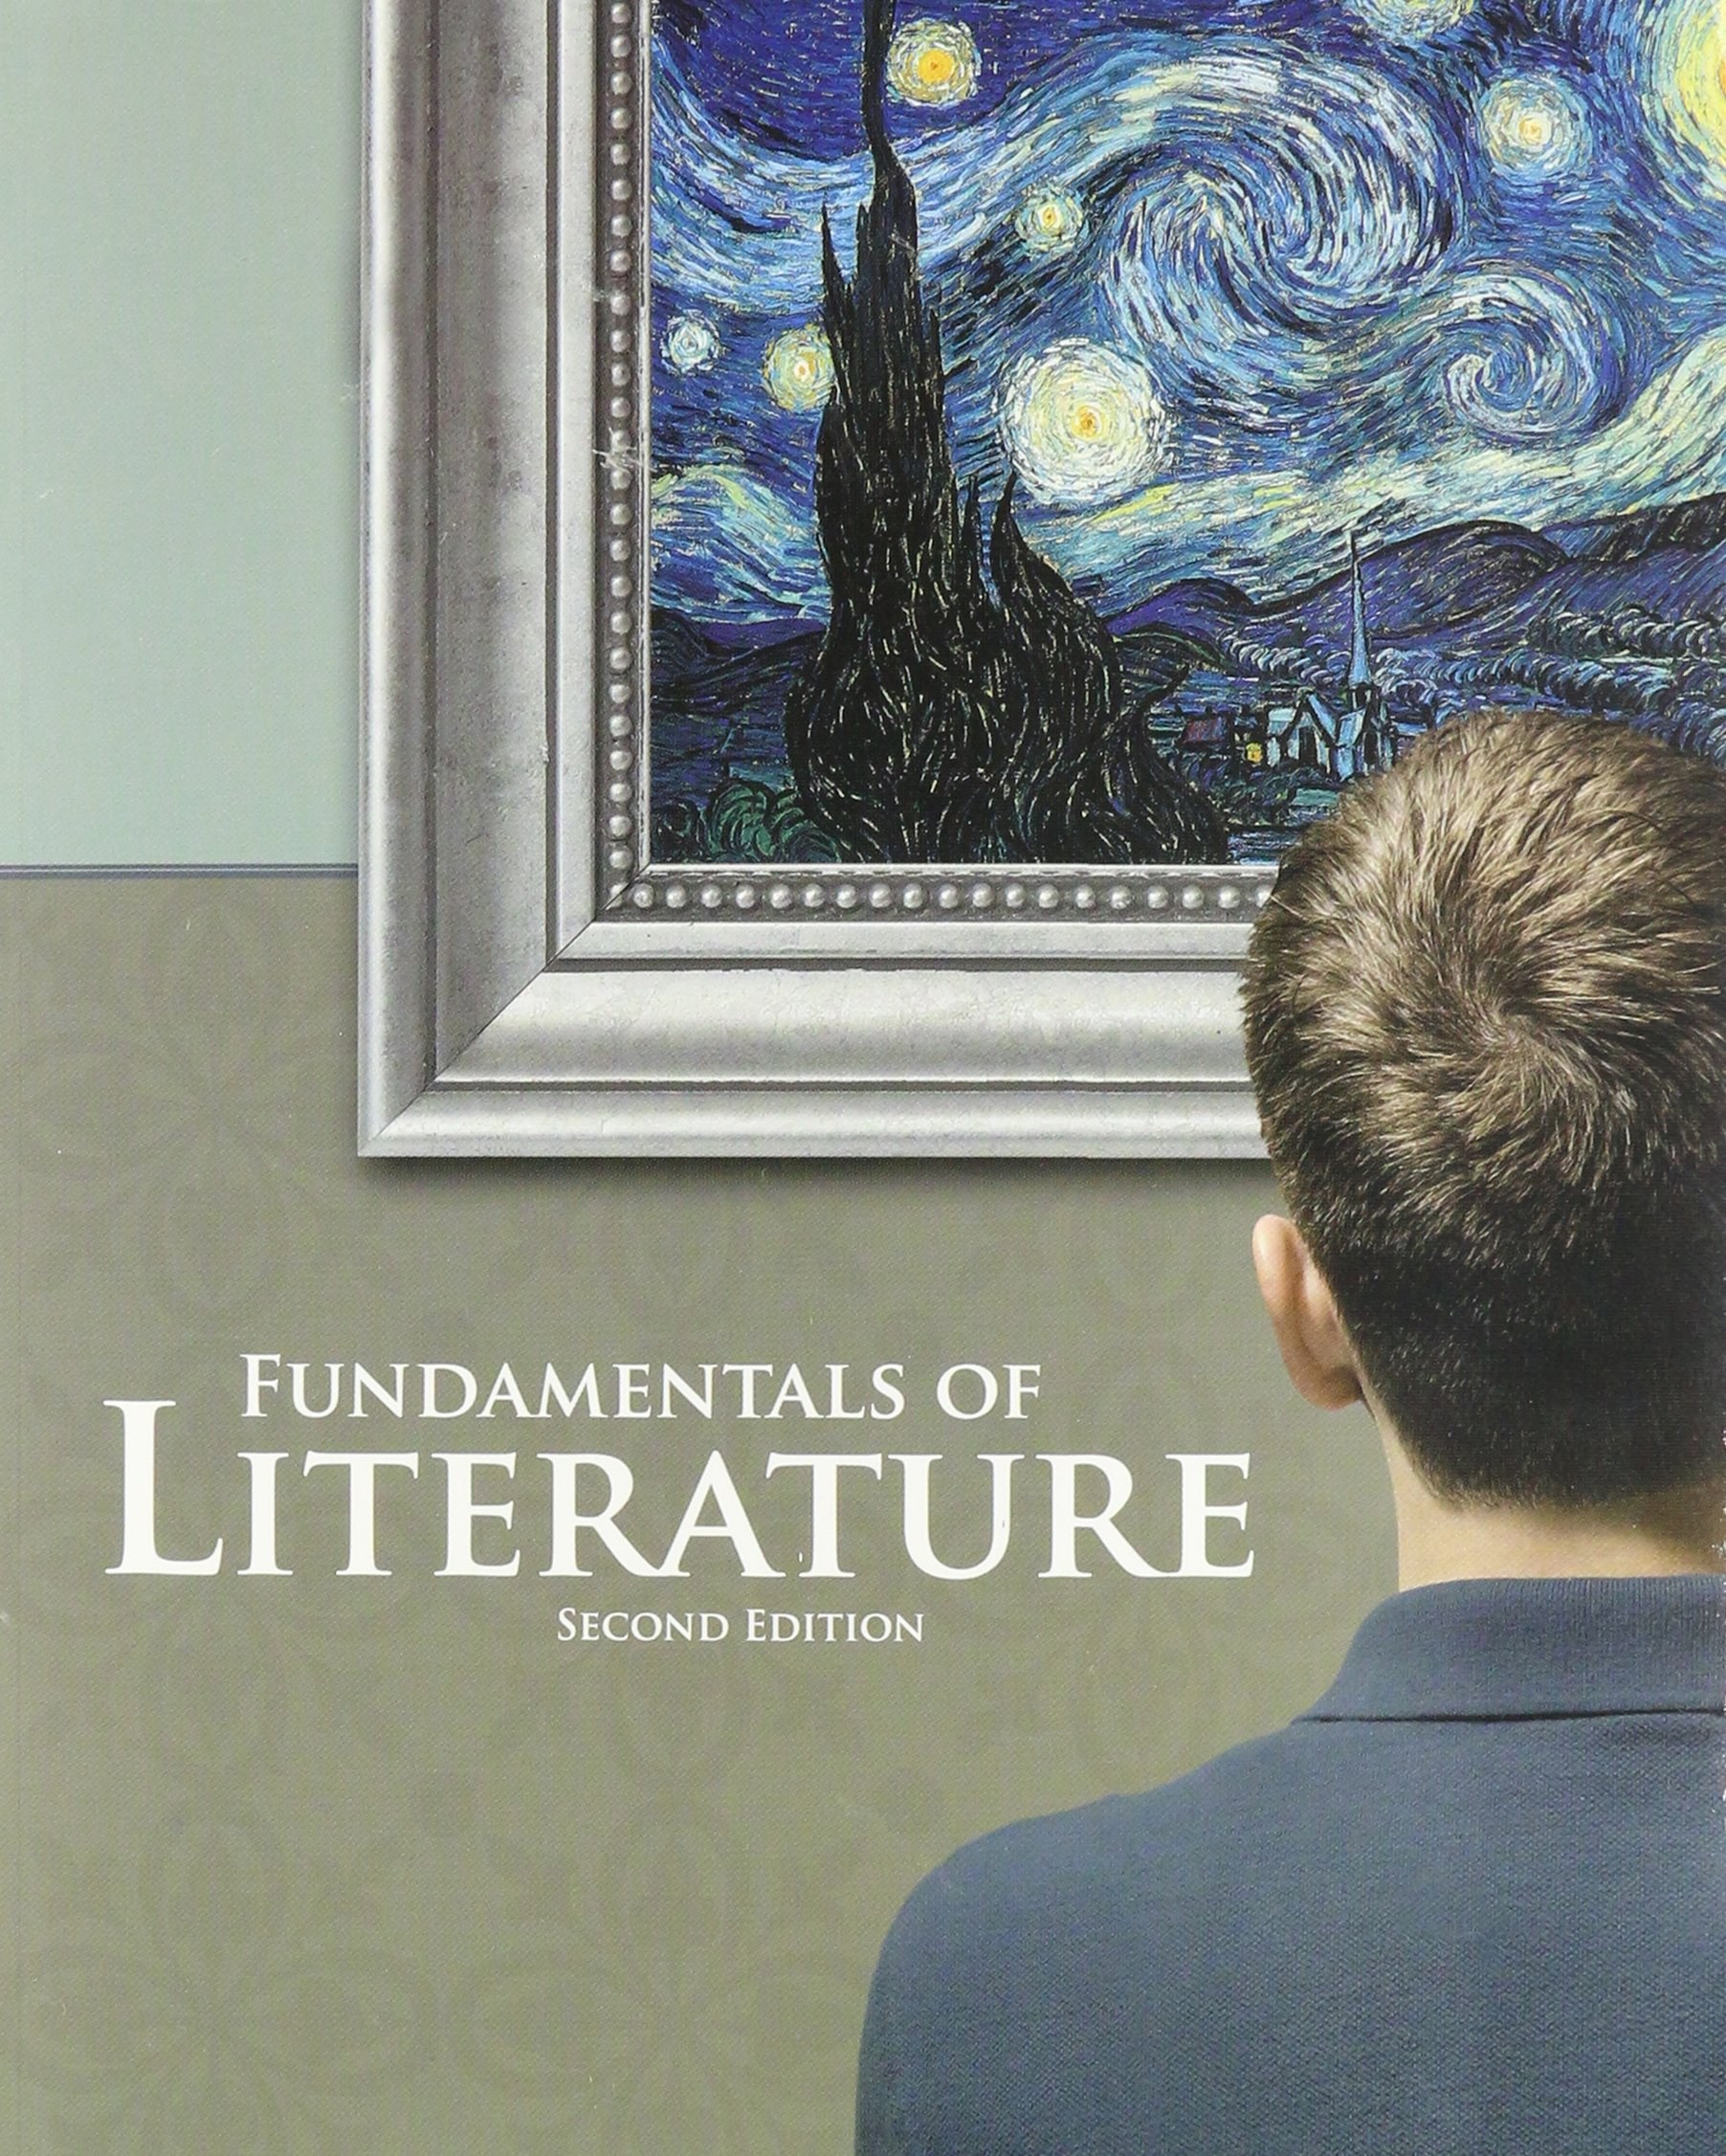 Literature craft and voice 2nd edition - Fundamentals Of Literature Student Text Second Edition Bethany Harris 9781591668879 Amazon Com Books